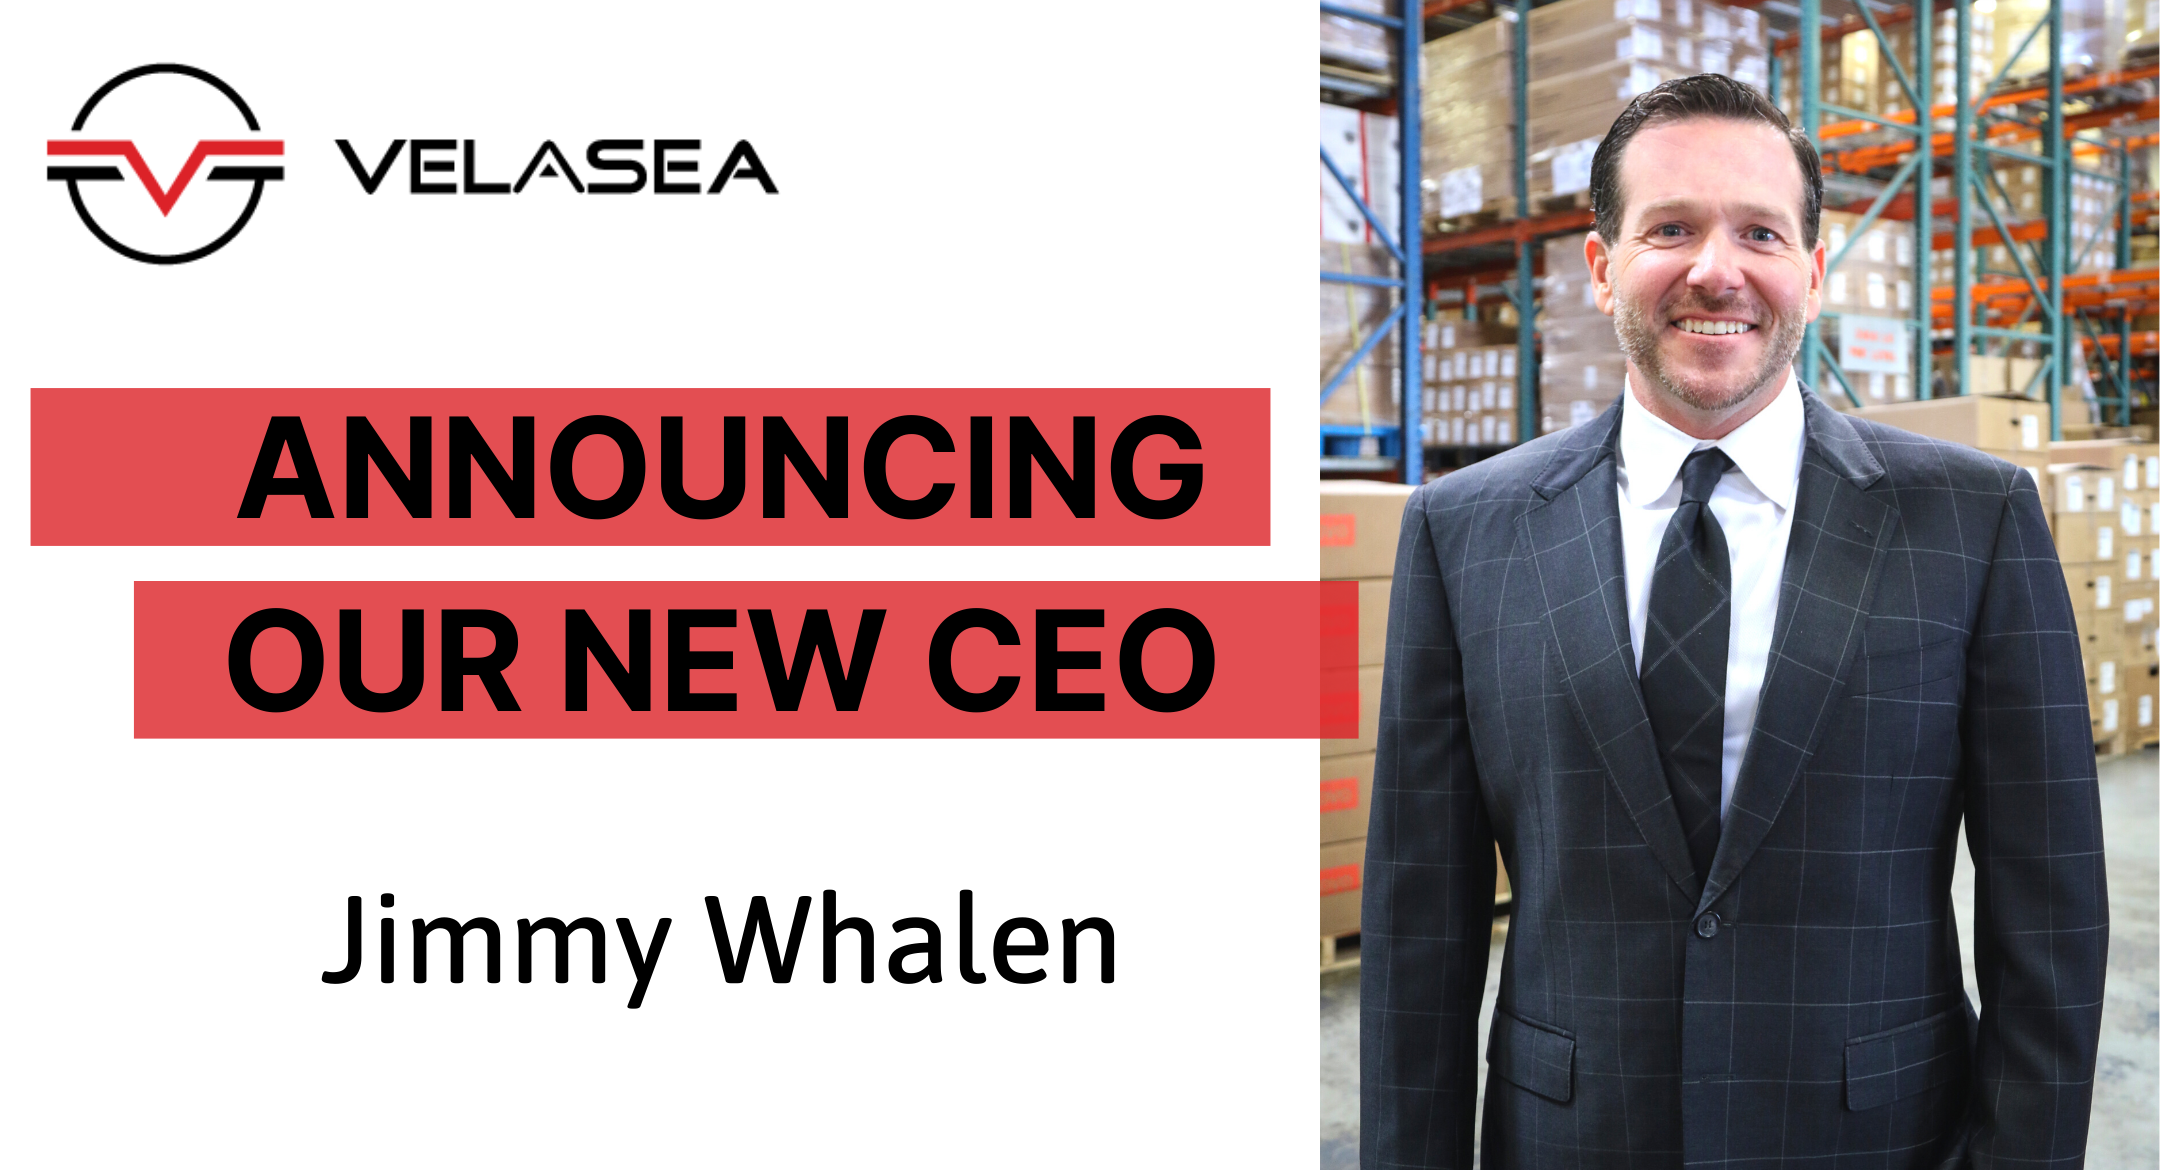 Jimmy Whalen Appointed New CEO of Velasea, LLC